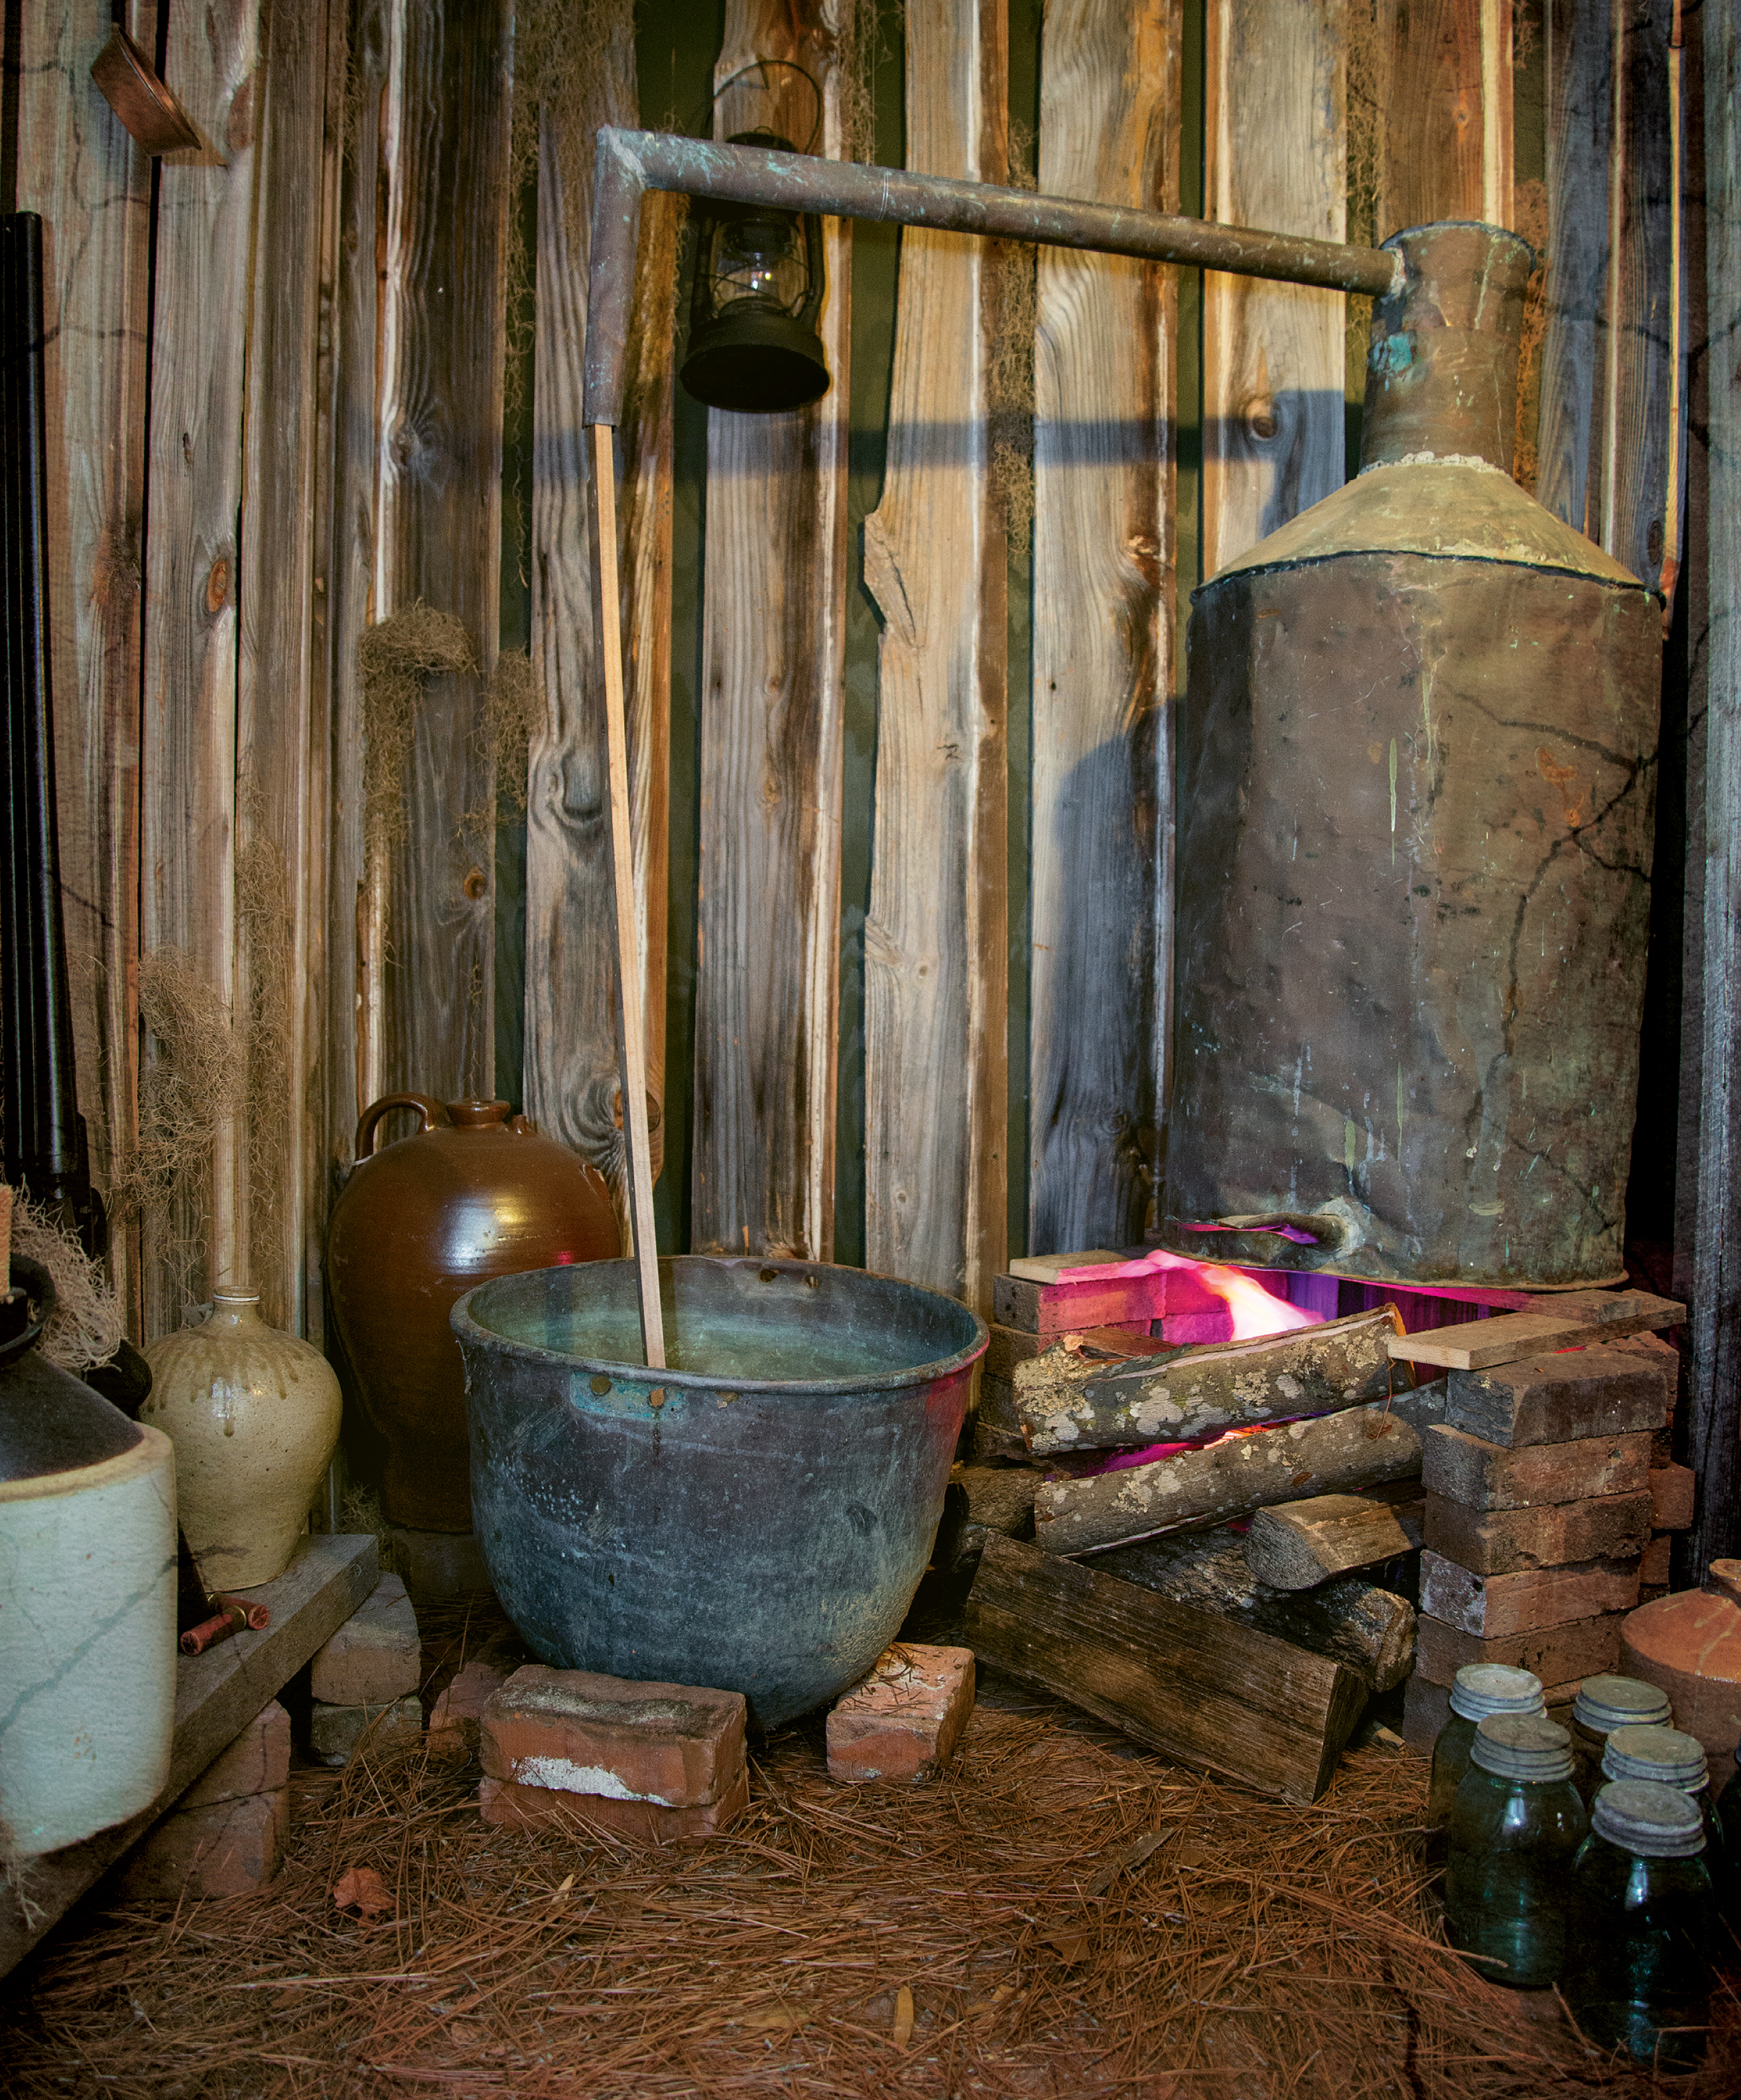 A vignette of a former working still is on display at the Berkeley County Museum & Heritage Center in Moncks Corner.